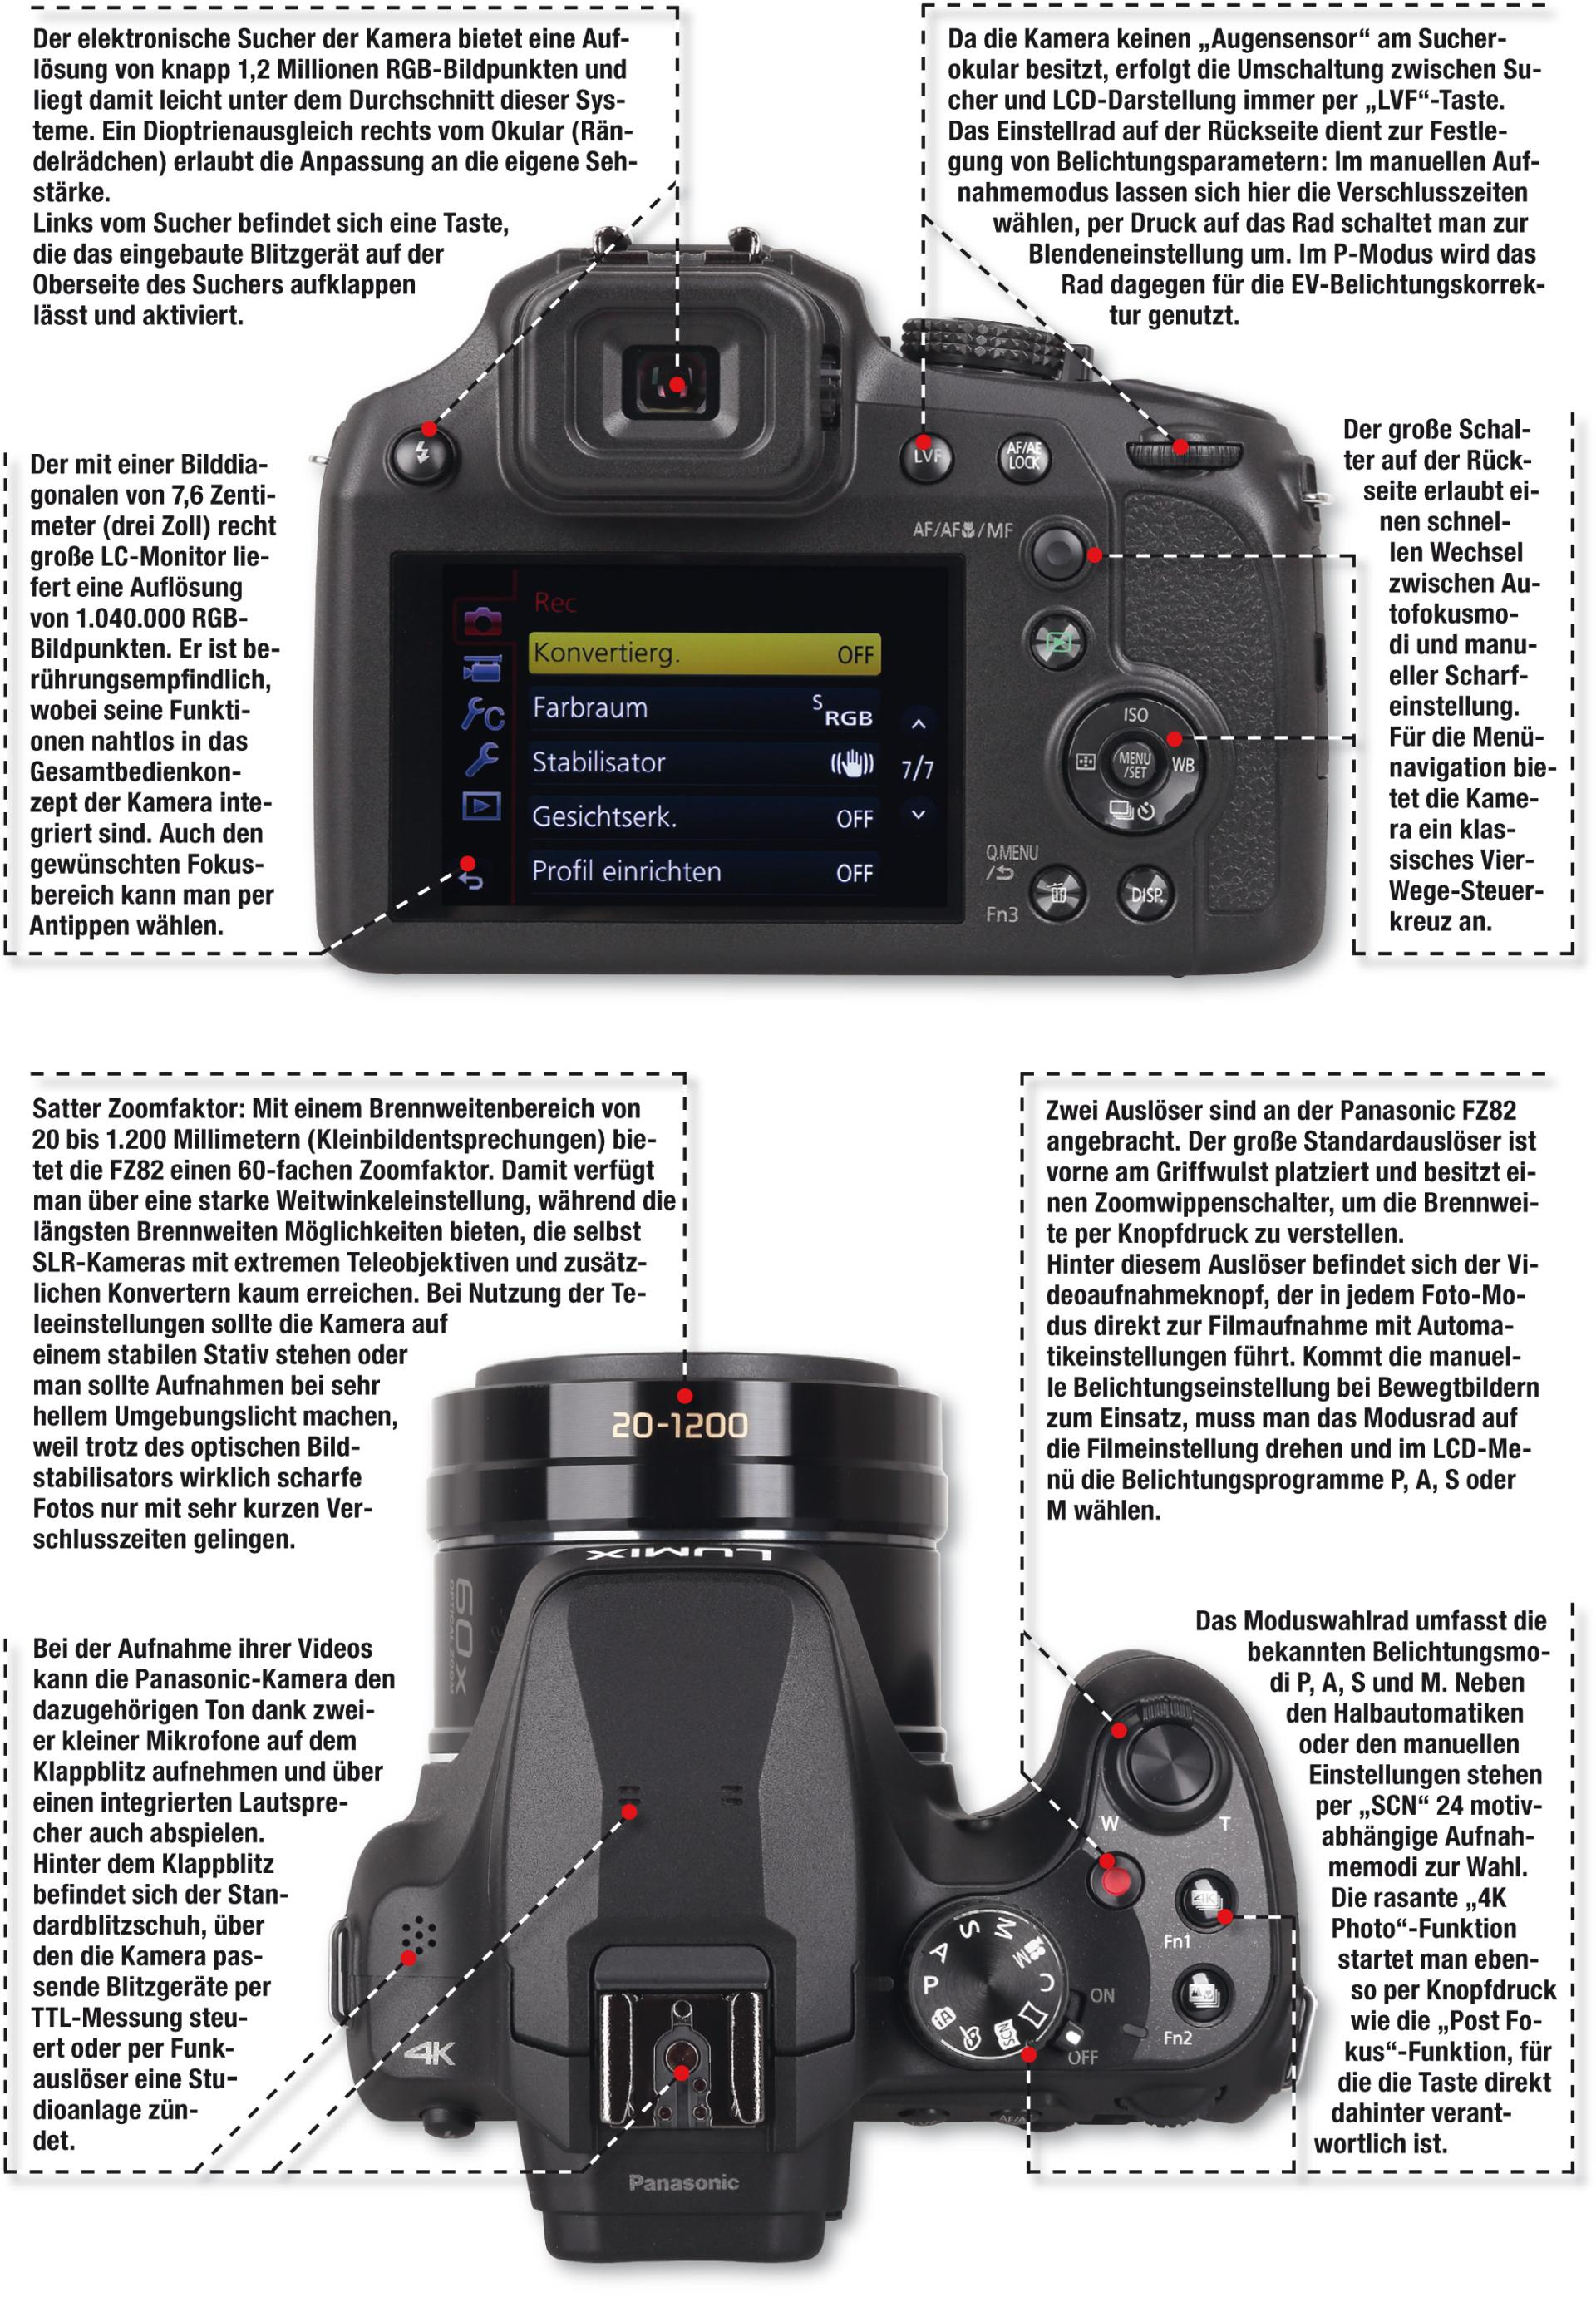 Kameratest Panasonic FZ82 | FOTO HITS Magazin